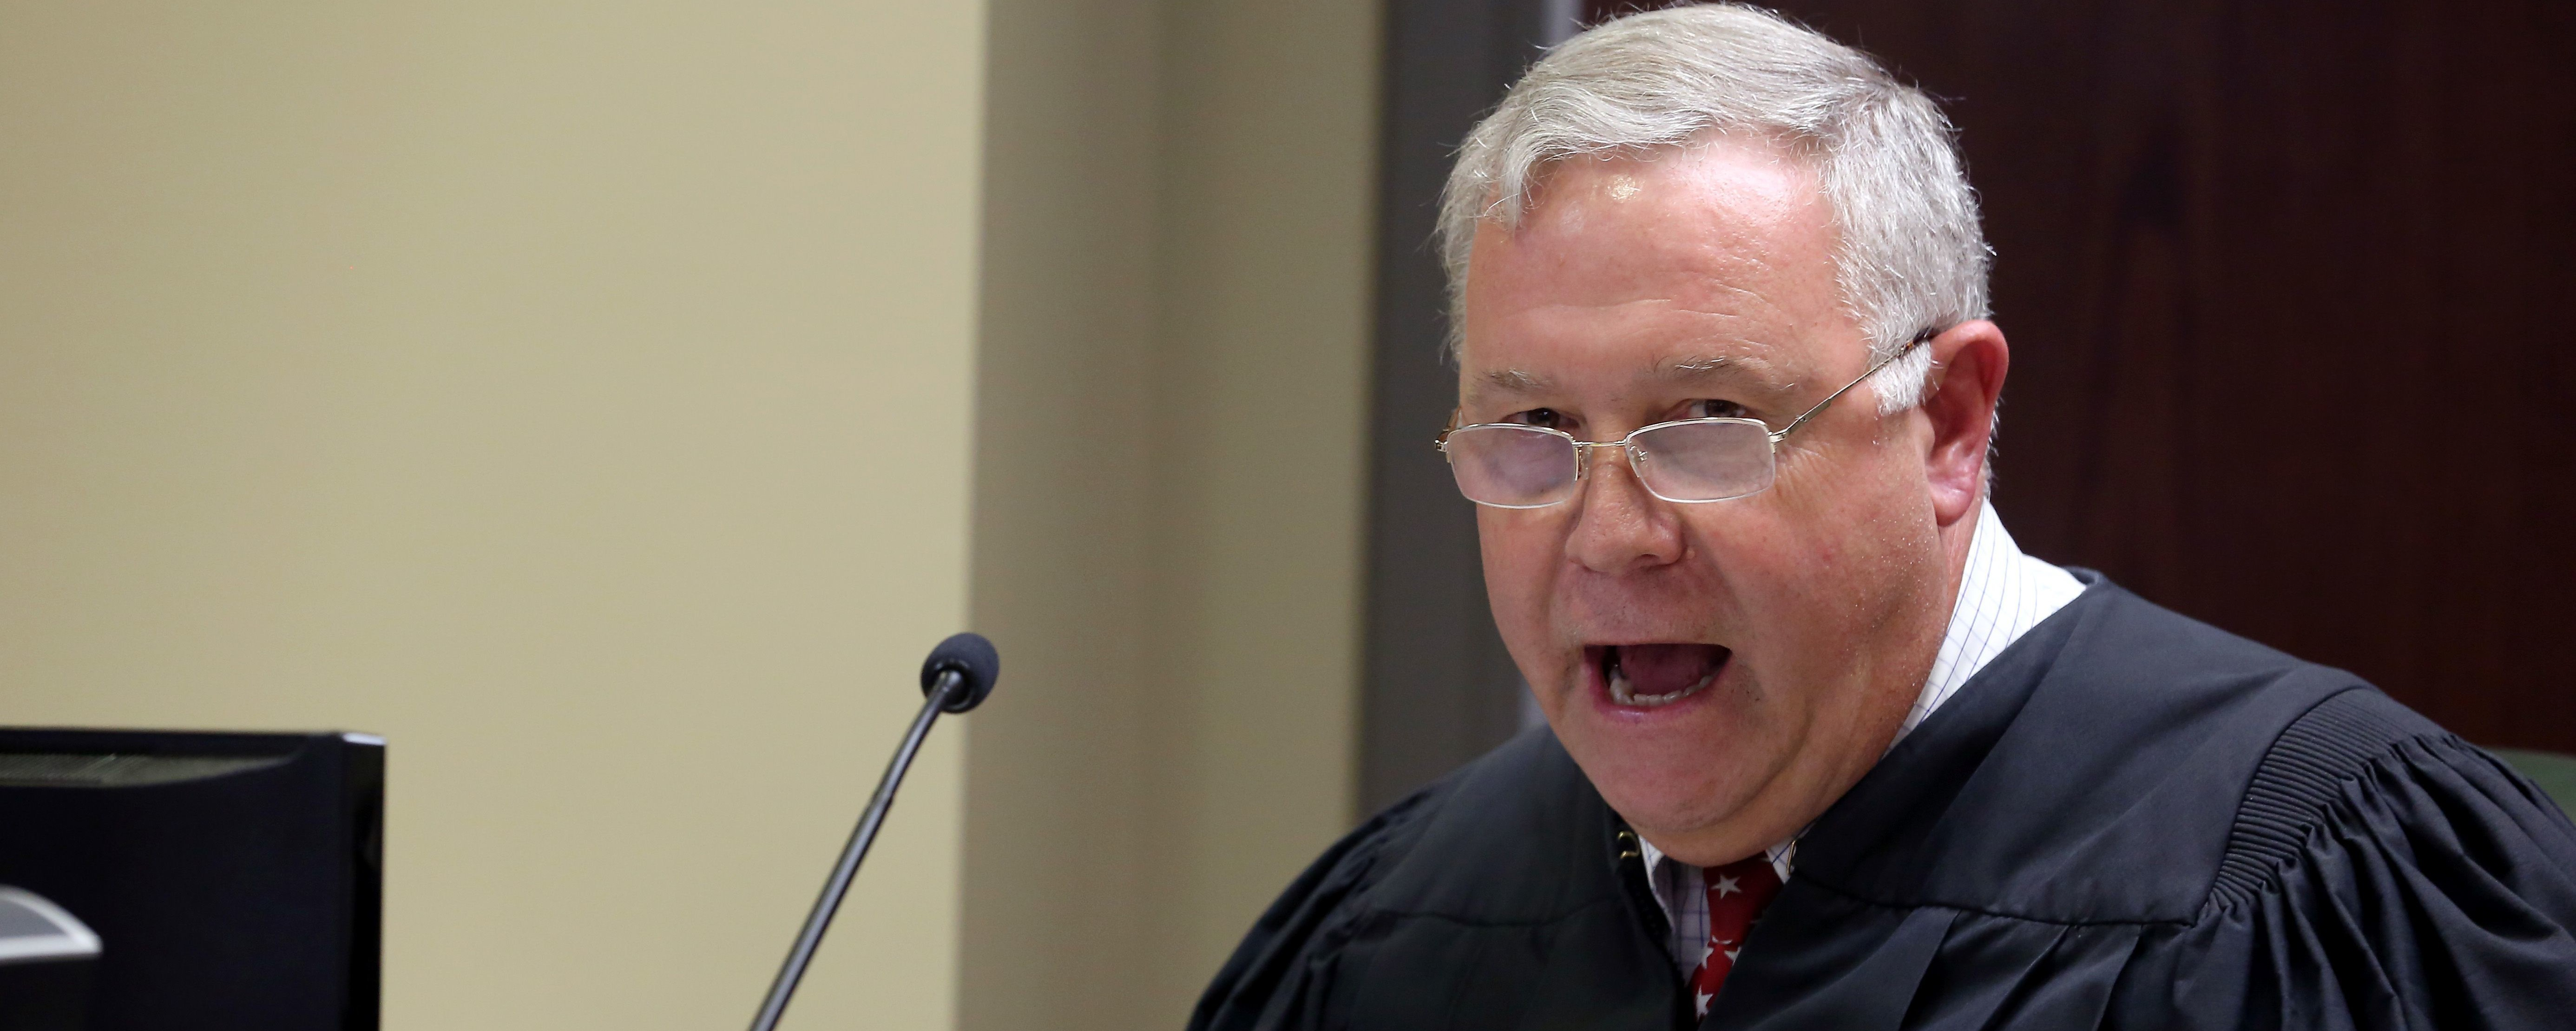 Judge Who Called Dylann Roof's Family 'Victims' Previously Made Racist Remark in Court